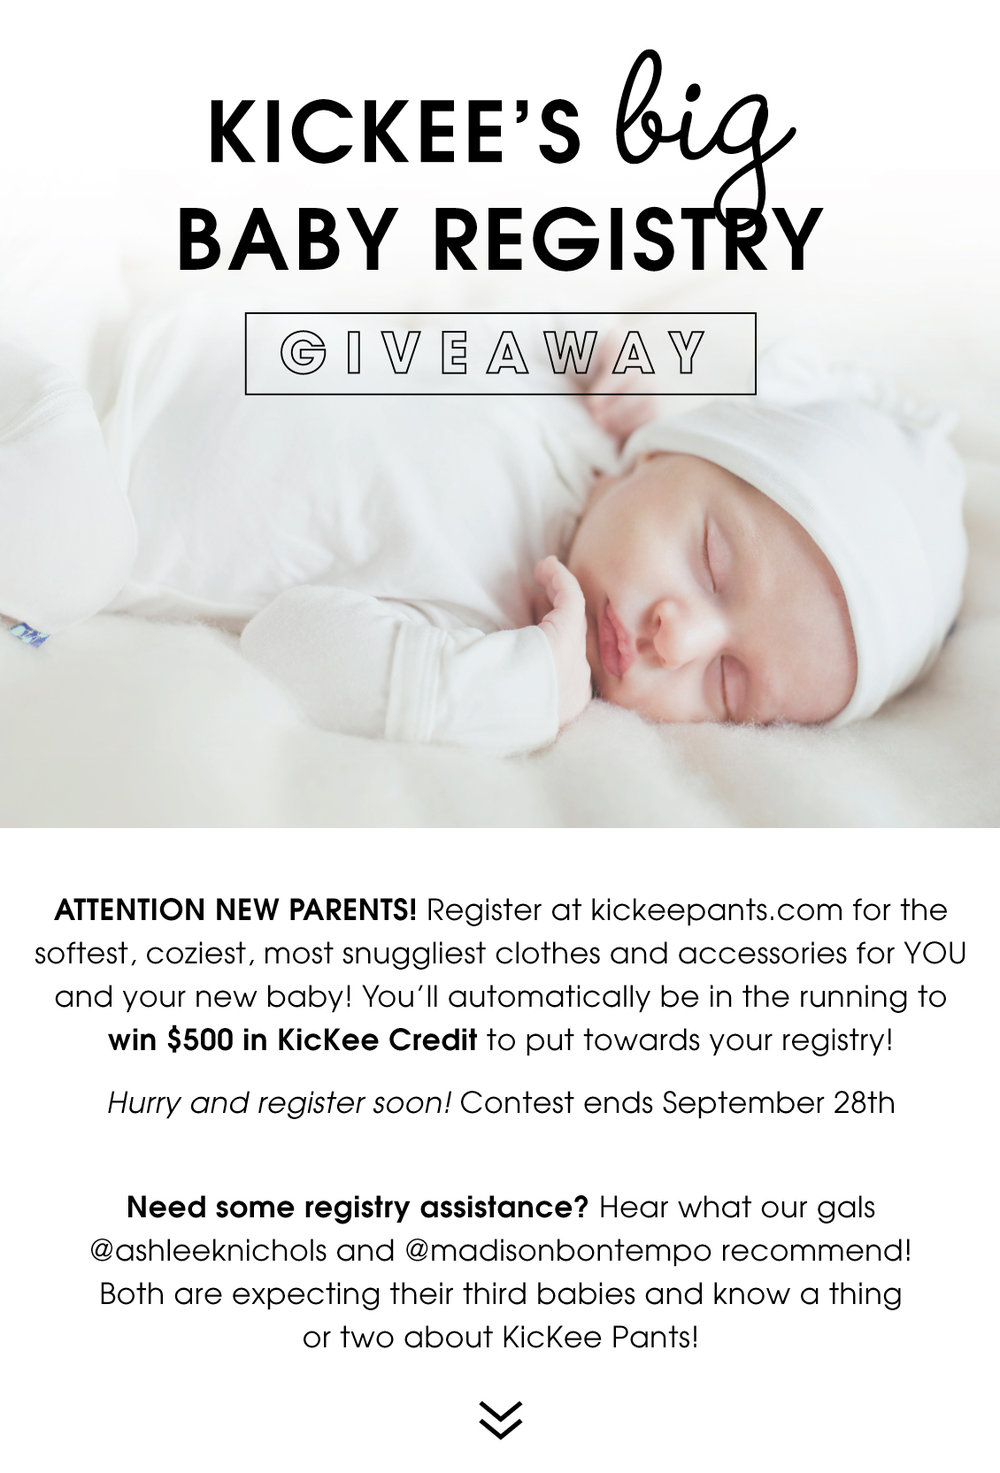 Baby-Registry-Giveaway-Campaign_Blog_01.jpg